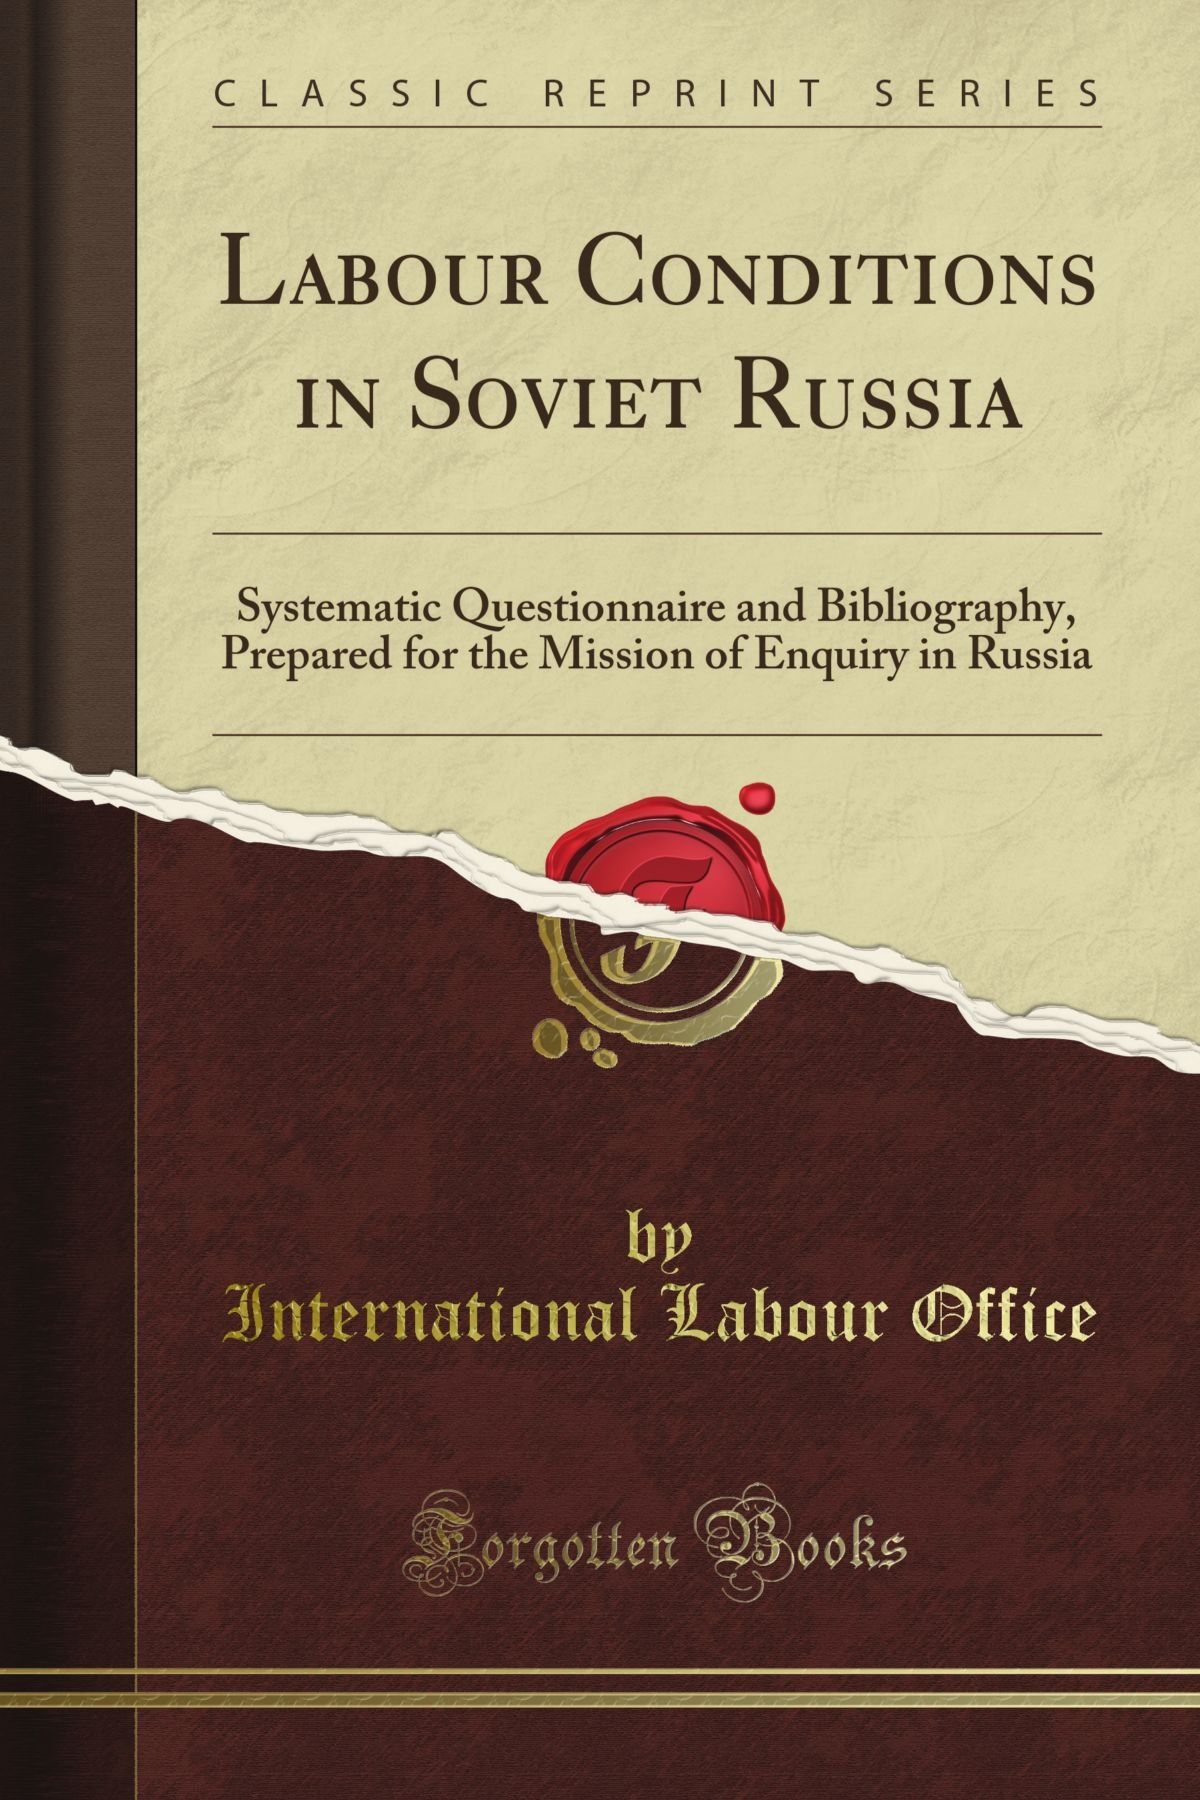 Download Labour Conditions in Soviet Russia: Systematic Questionnaire and Bibliography, Prepared for the Mission of Enquiry in Russia (Classic Reprint) pdf epub